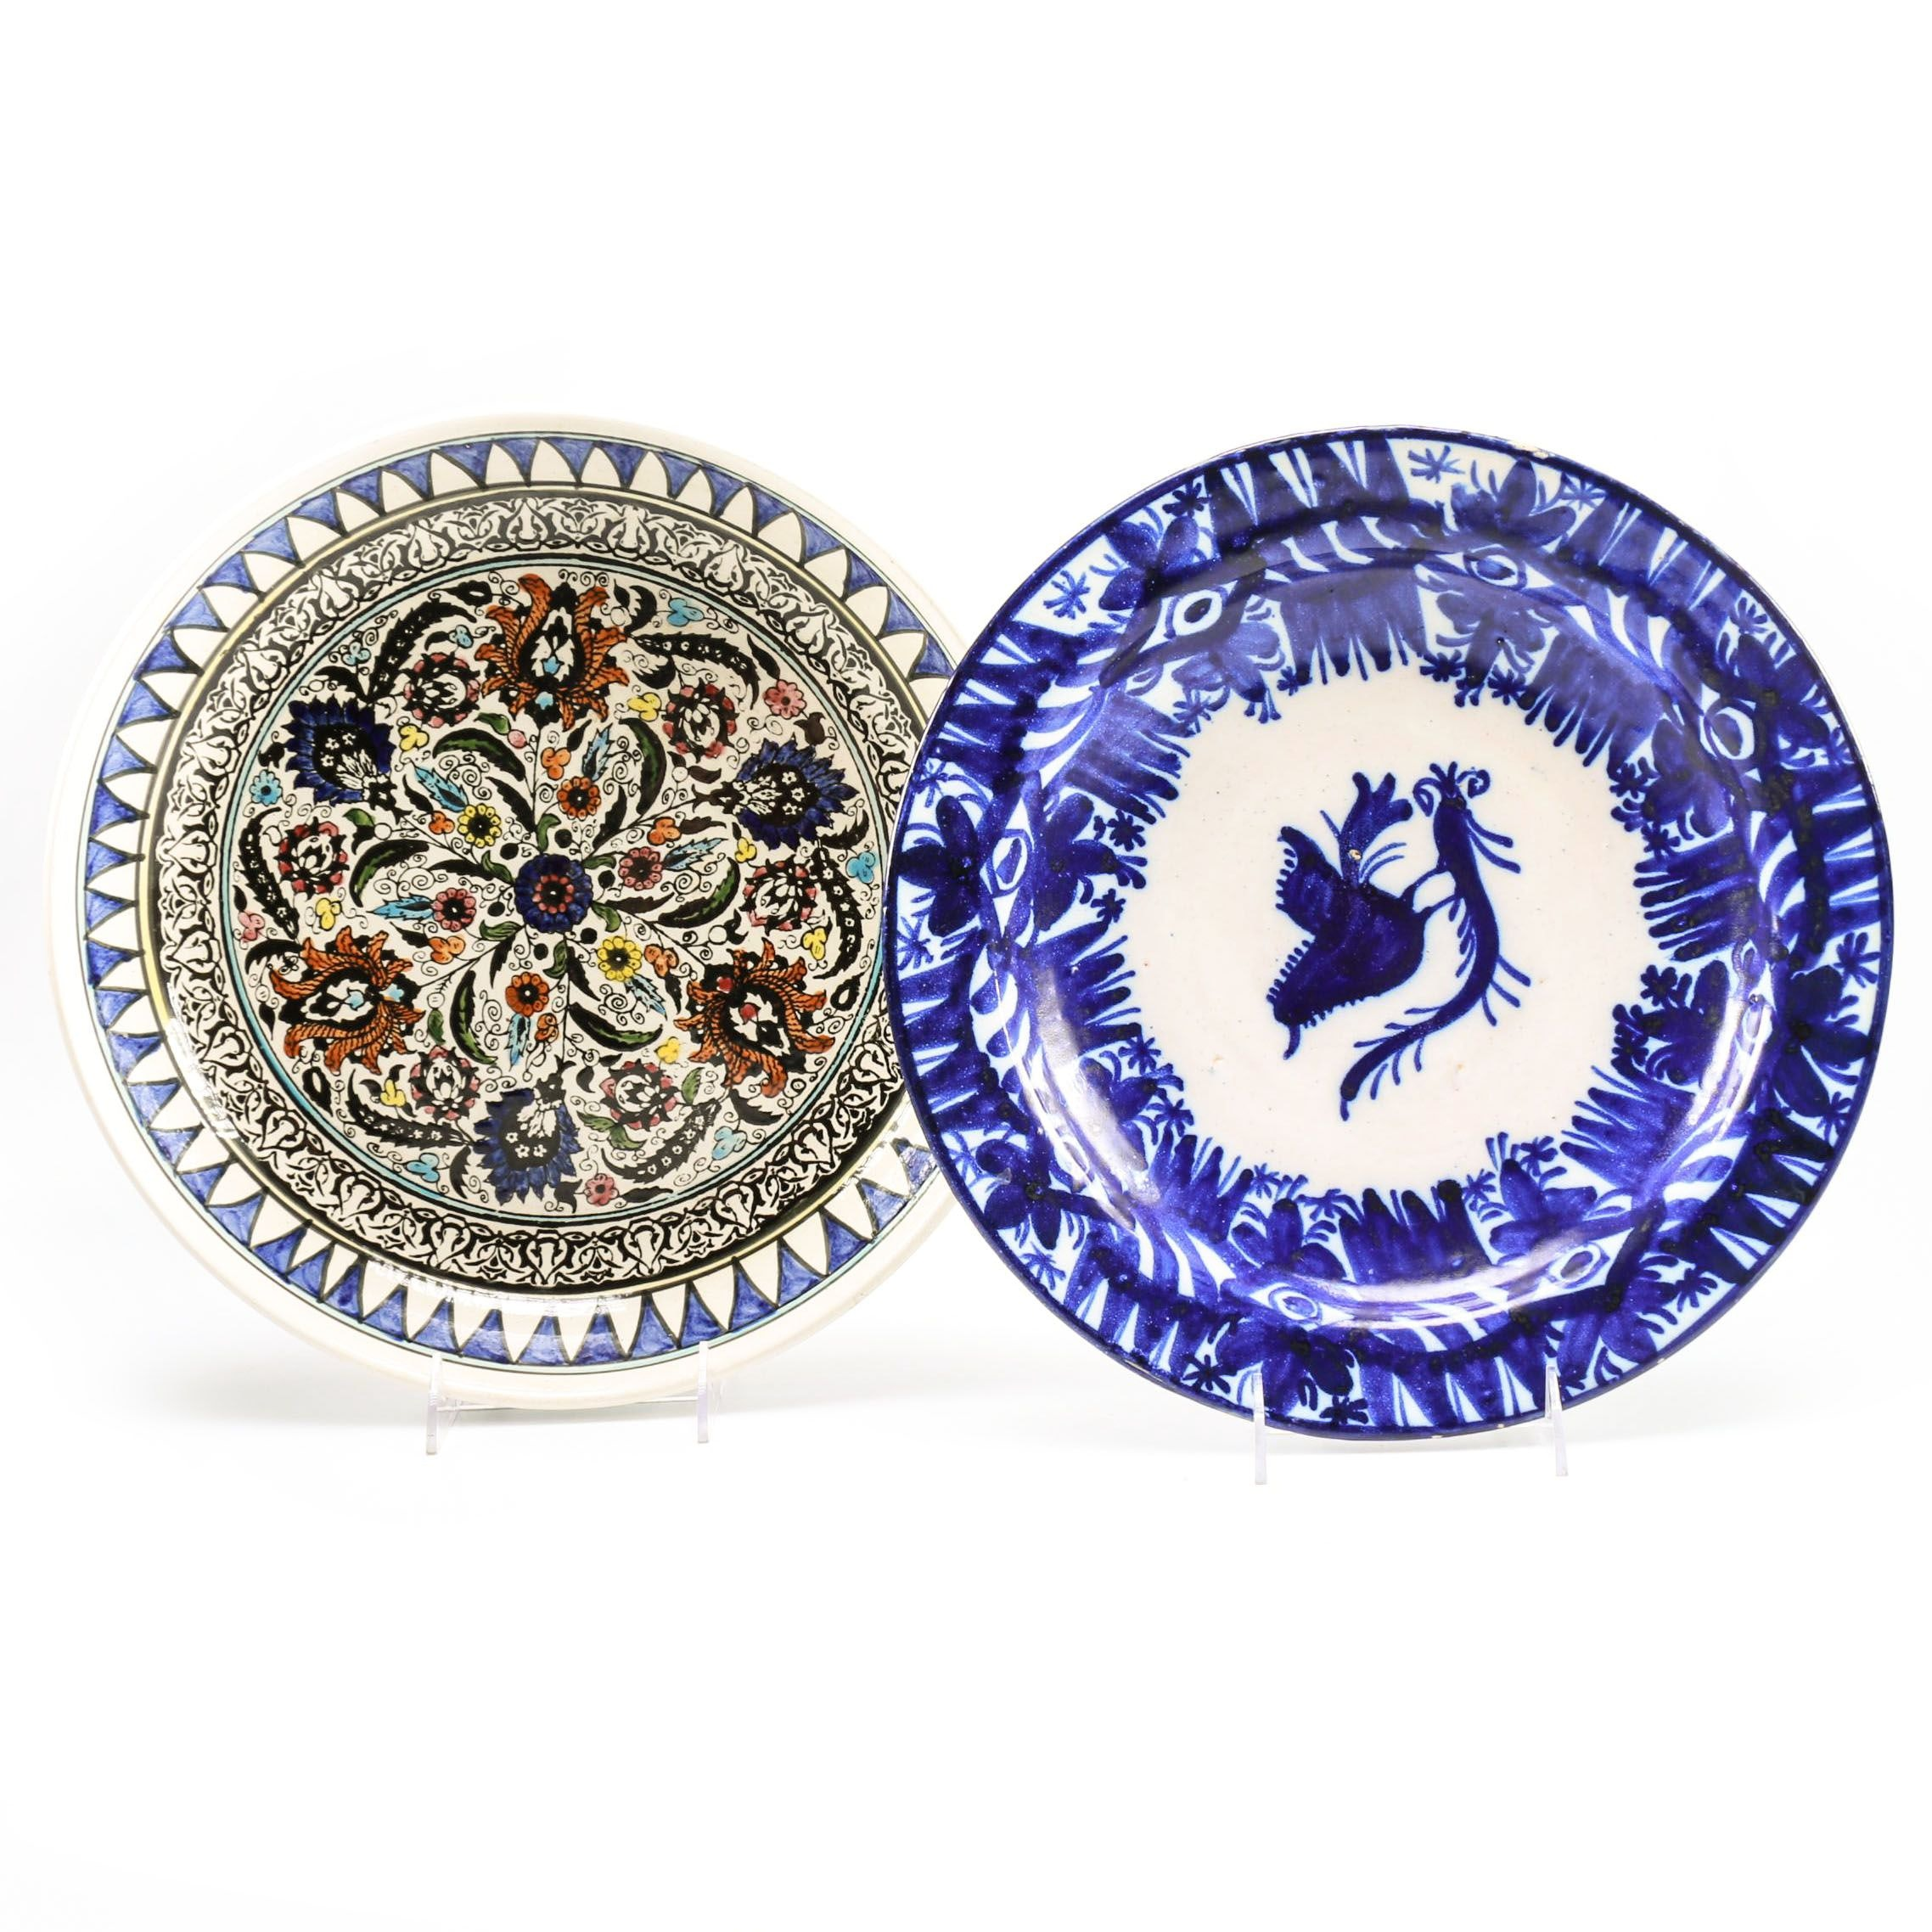 Decorative Hand-Painted Rimmed Bowl and Platter